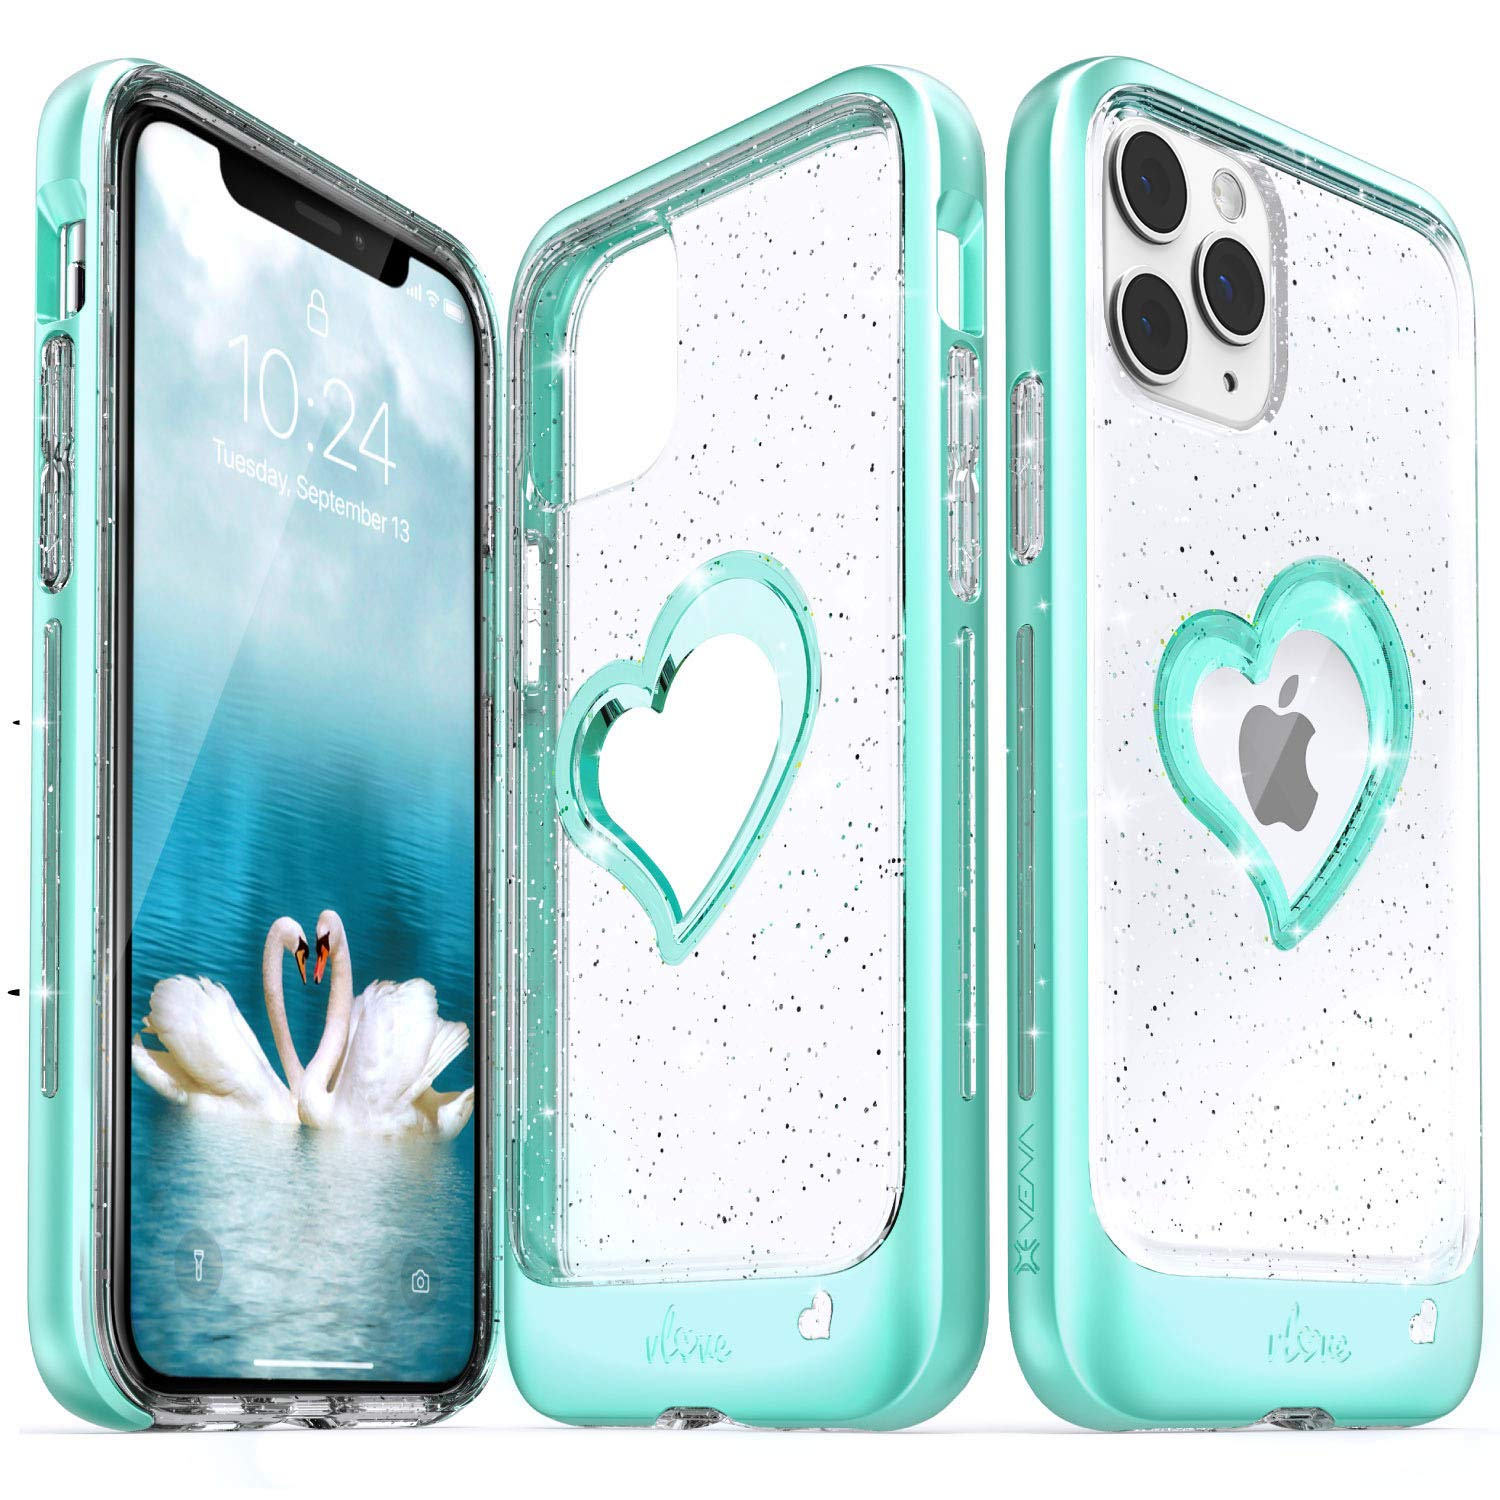 Vena iPhone 11 Pro Glitter Case, vLove Glitter Heart Case Slim Dual Layer Protection, Designed for iPhone 11 Pro (5.8 inches) - Teal (PC) and Clear TPU with Glitter